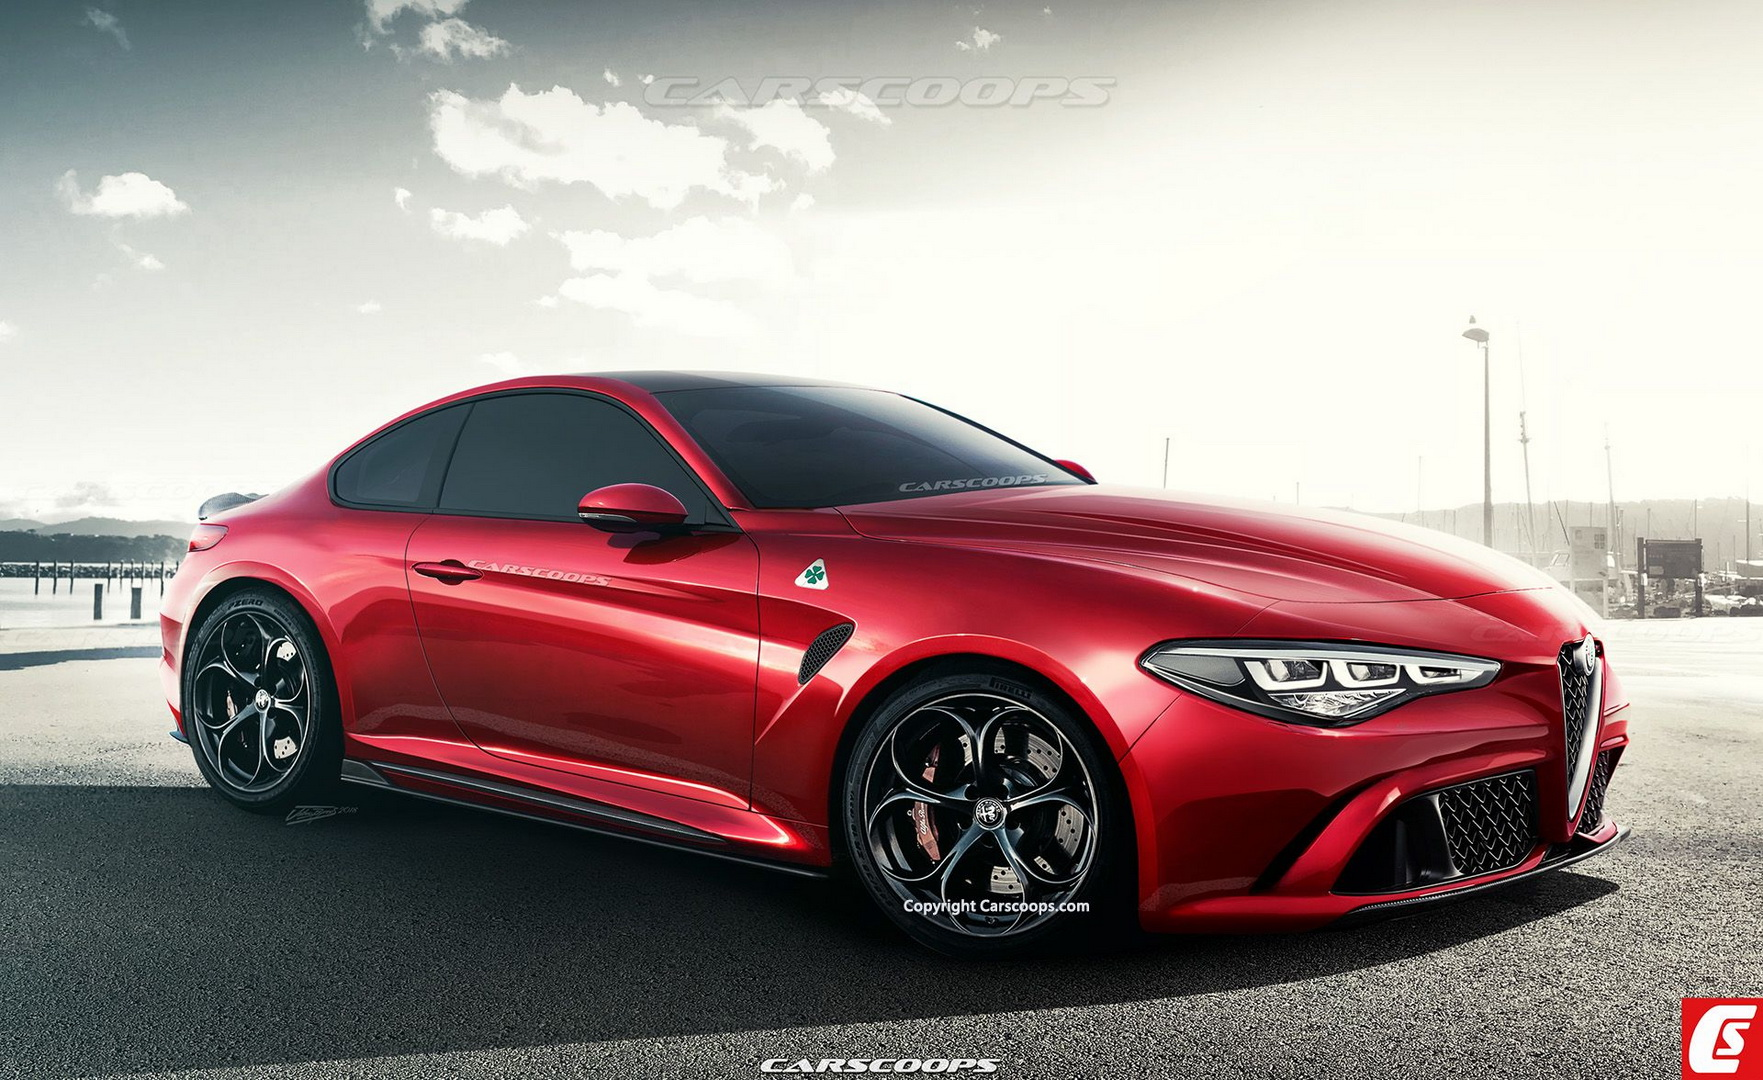 New Alfa Romeo GTV Expected In 2021 With Electrification ...